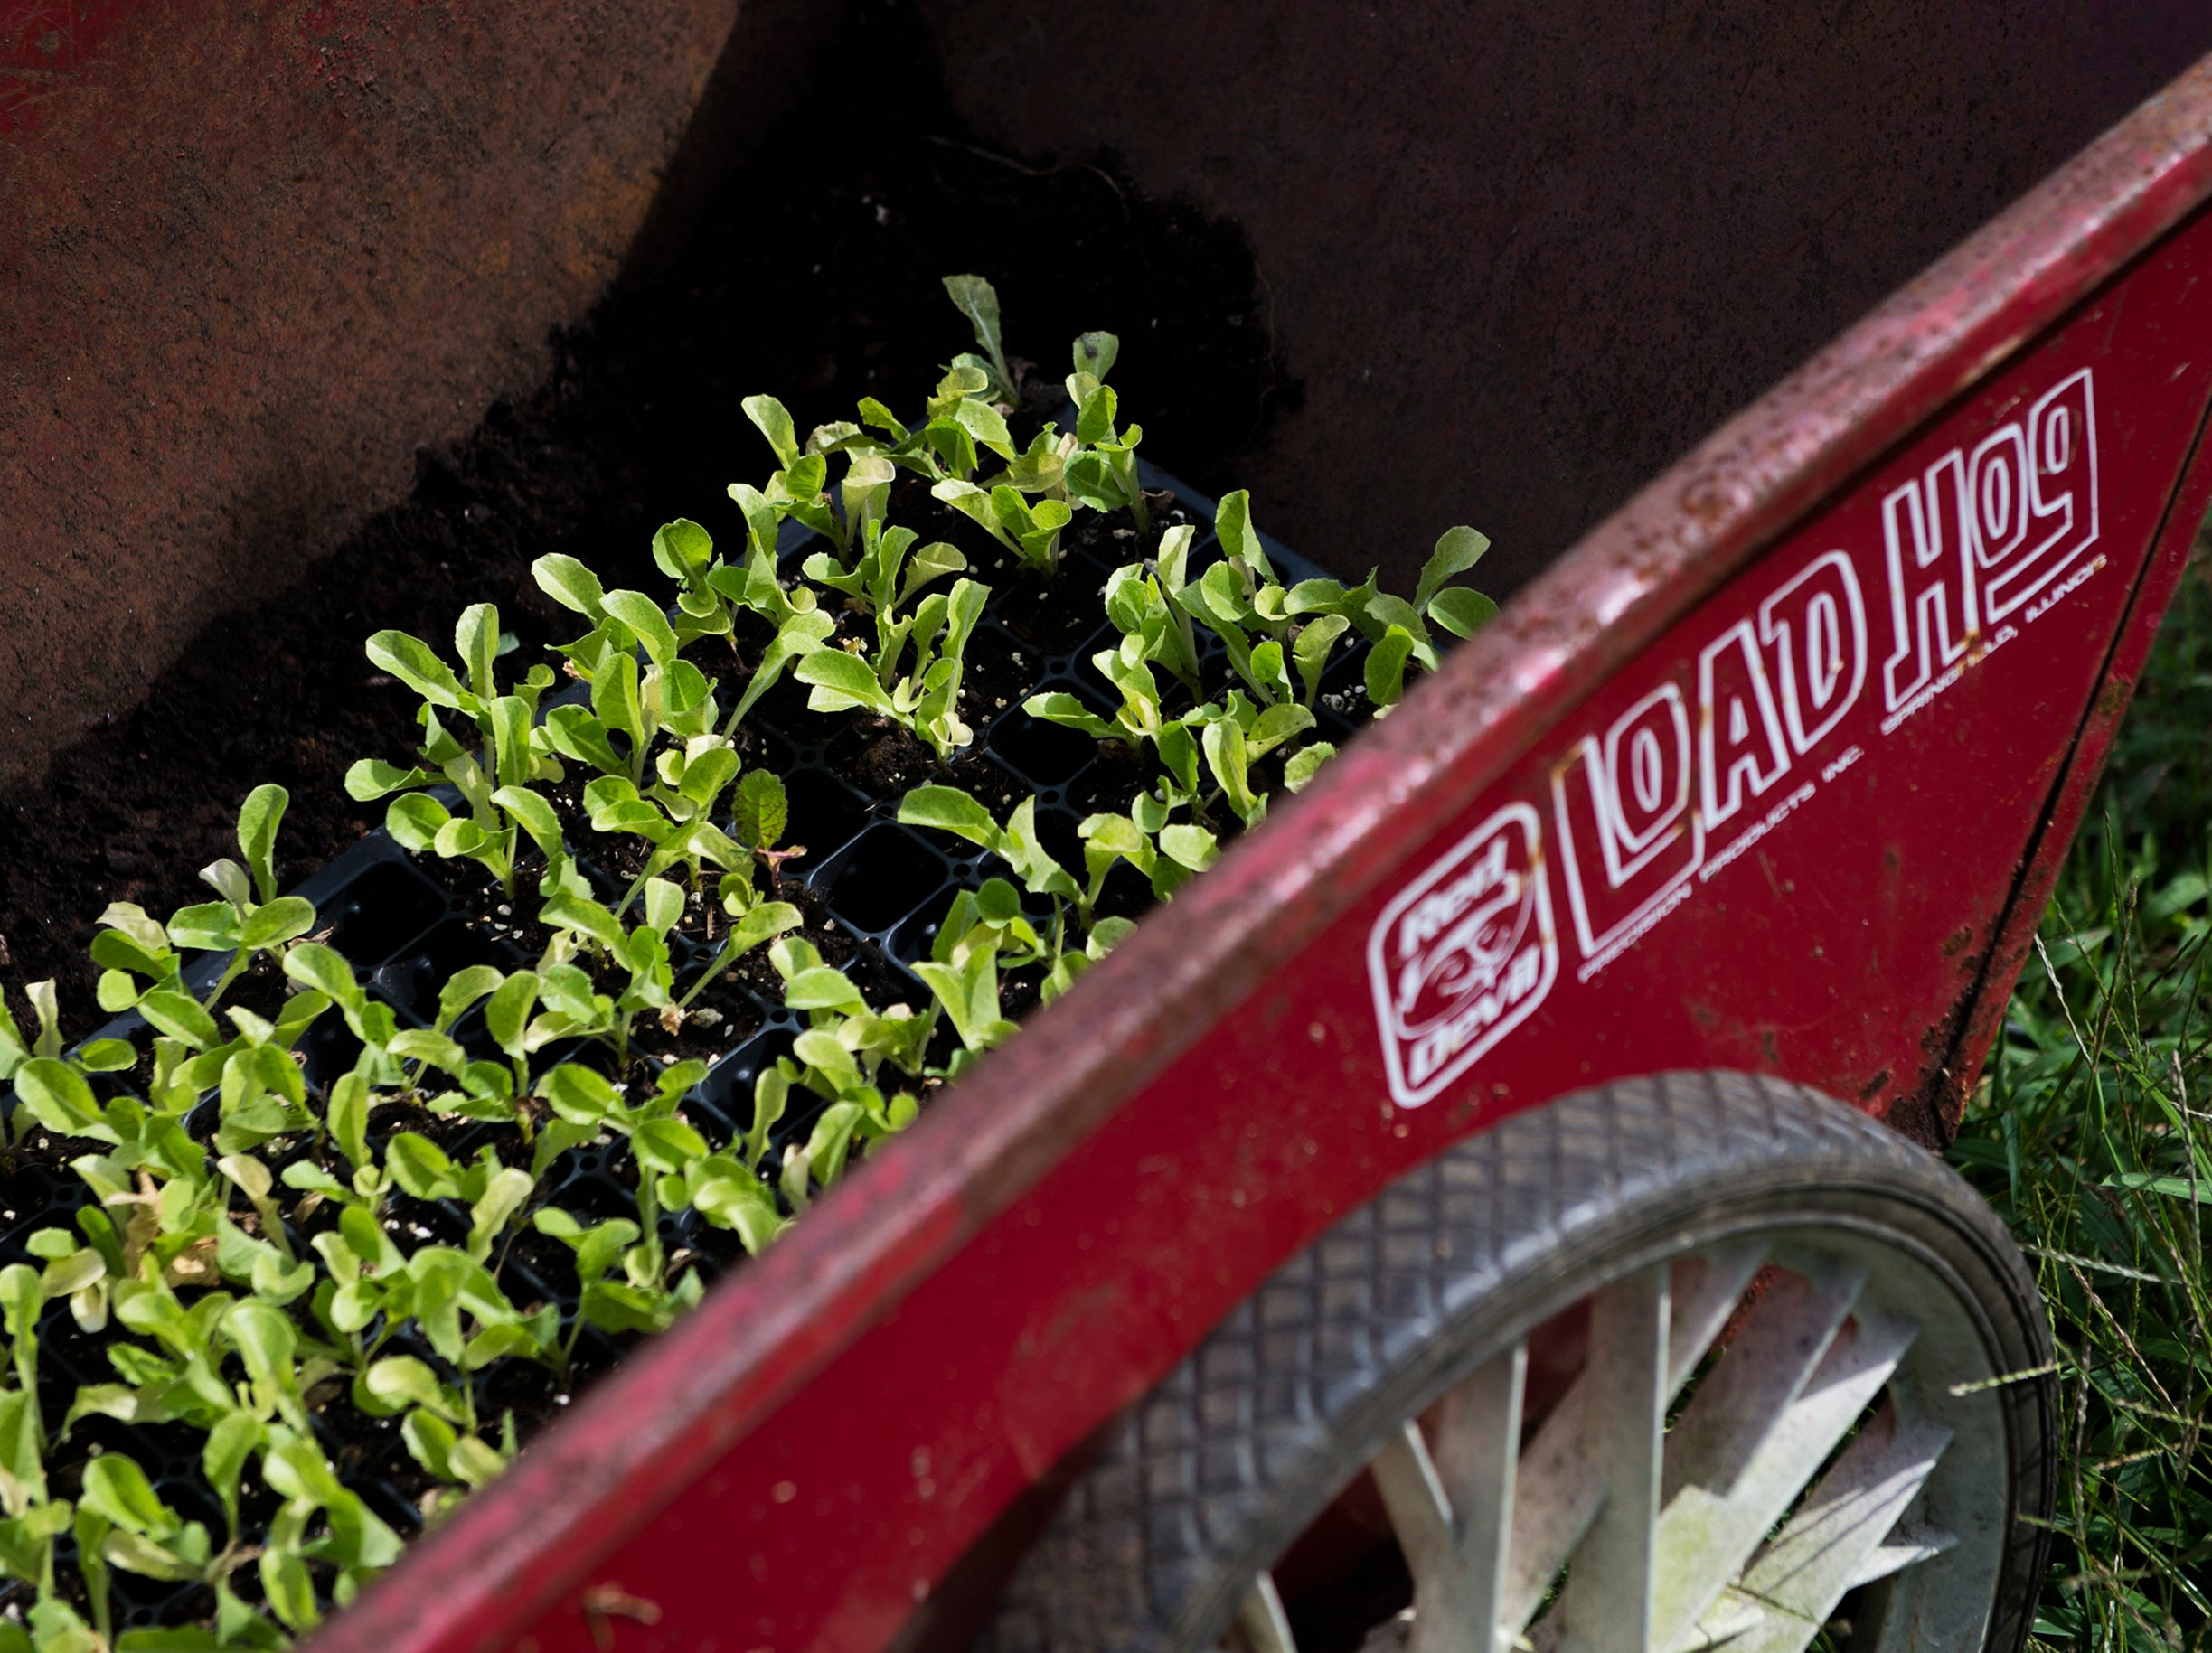 A wheelbarrow is filled with crops at Free Haven Farms Thursday, Aug. 23, 2018 in Lawnside, N.J.